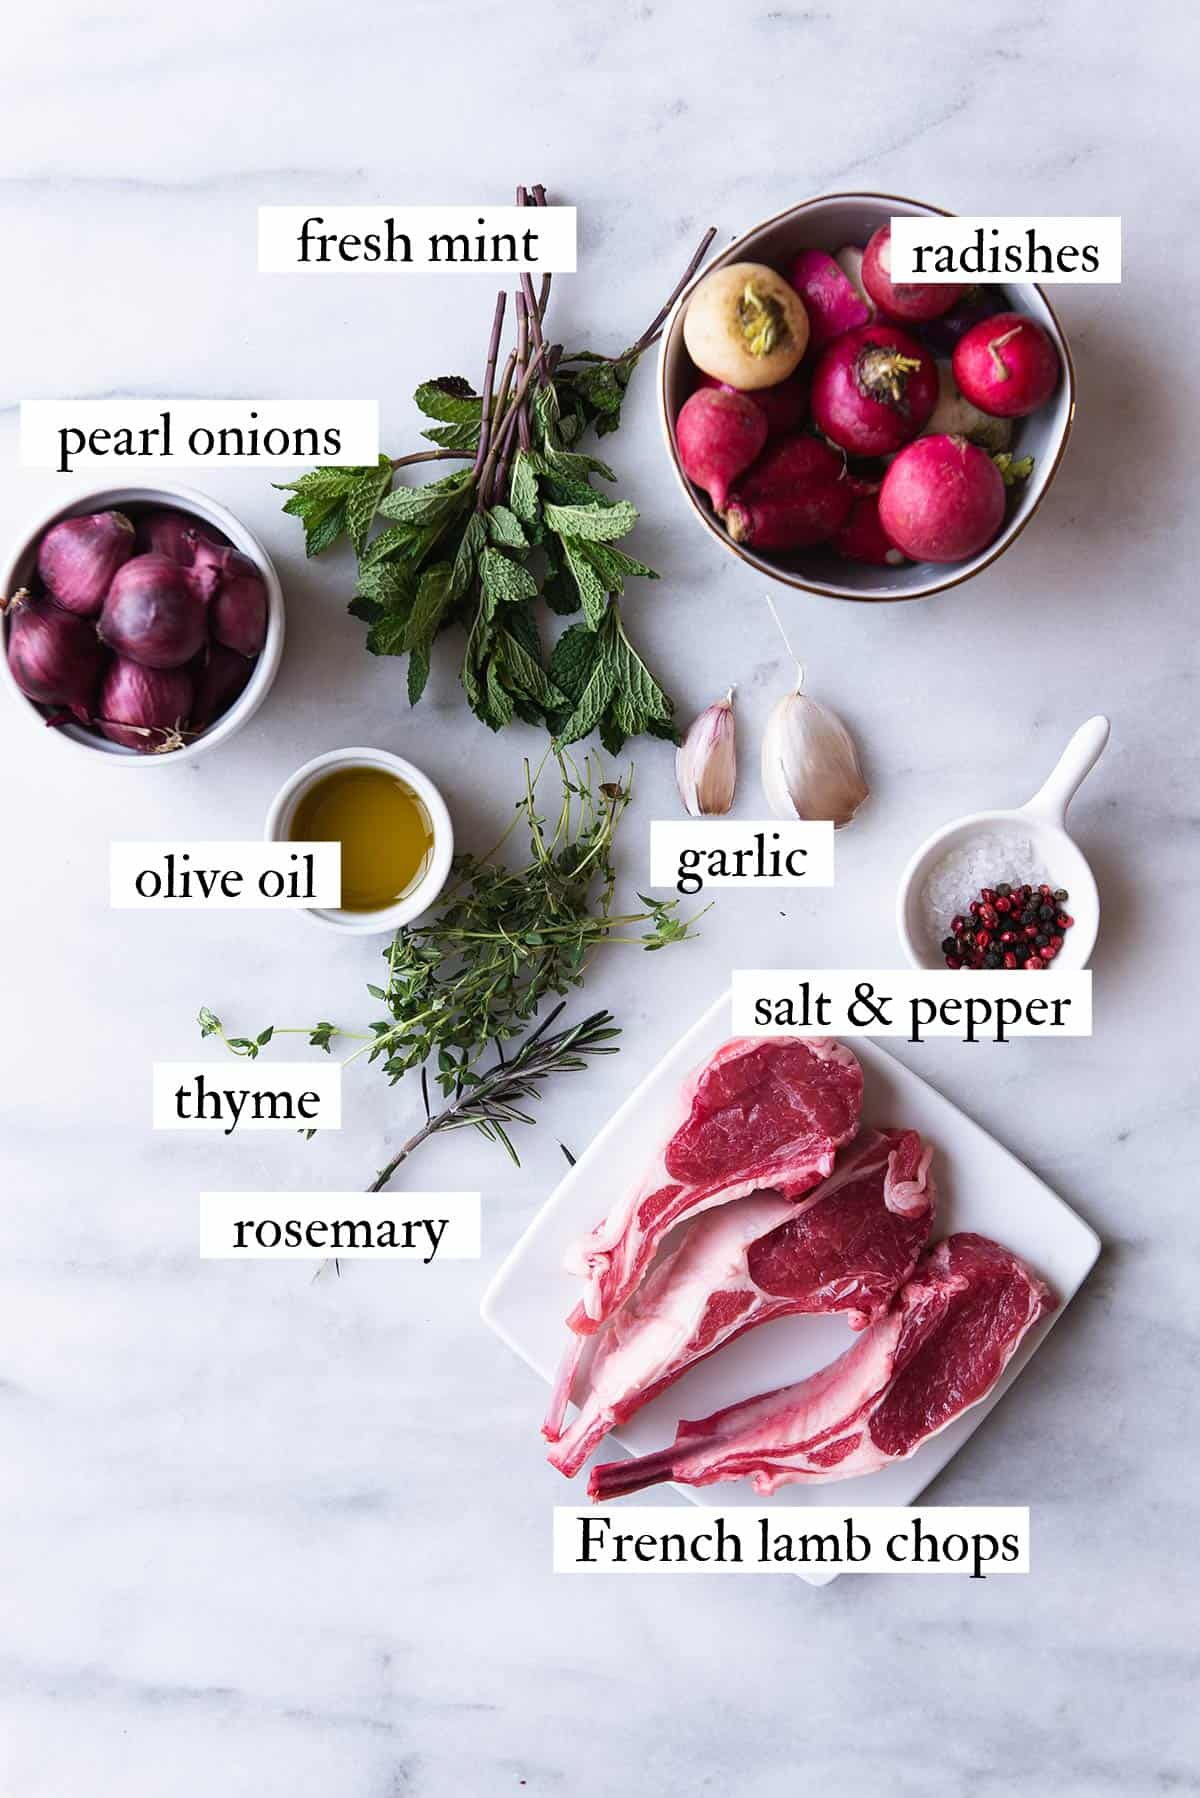 ingredients for French lamb chops with mint aioli on white countertop